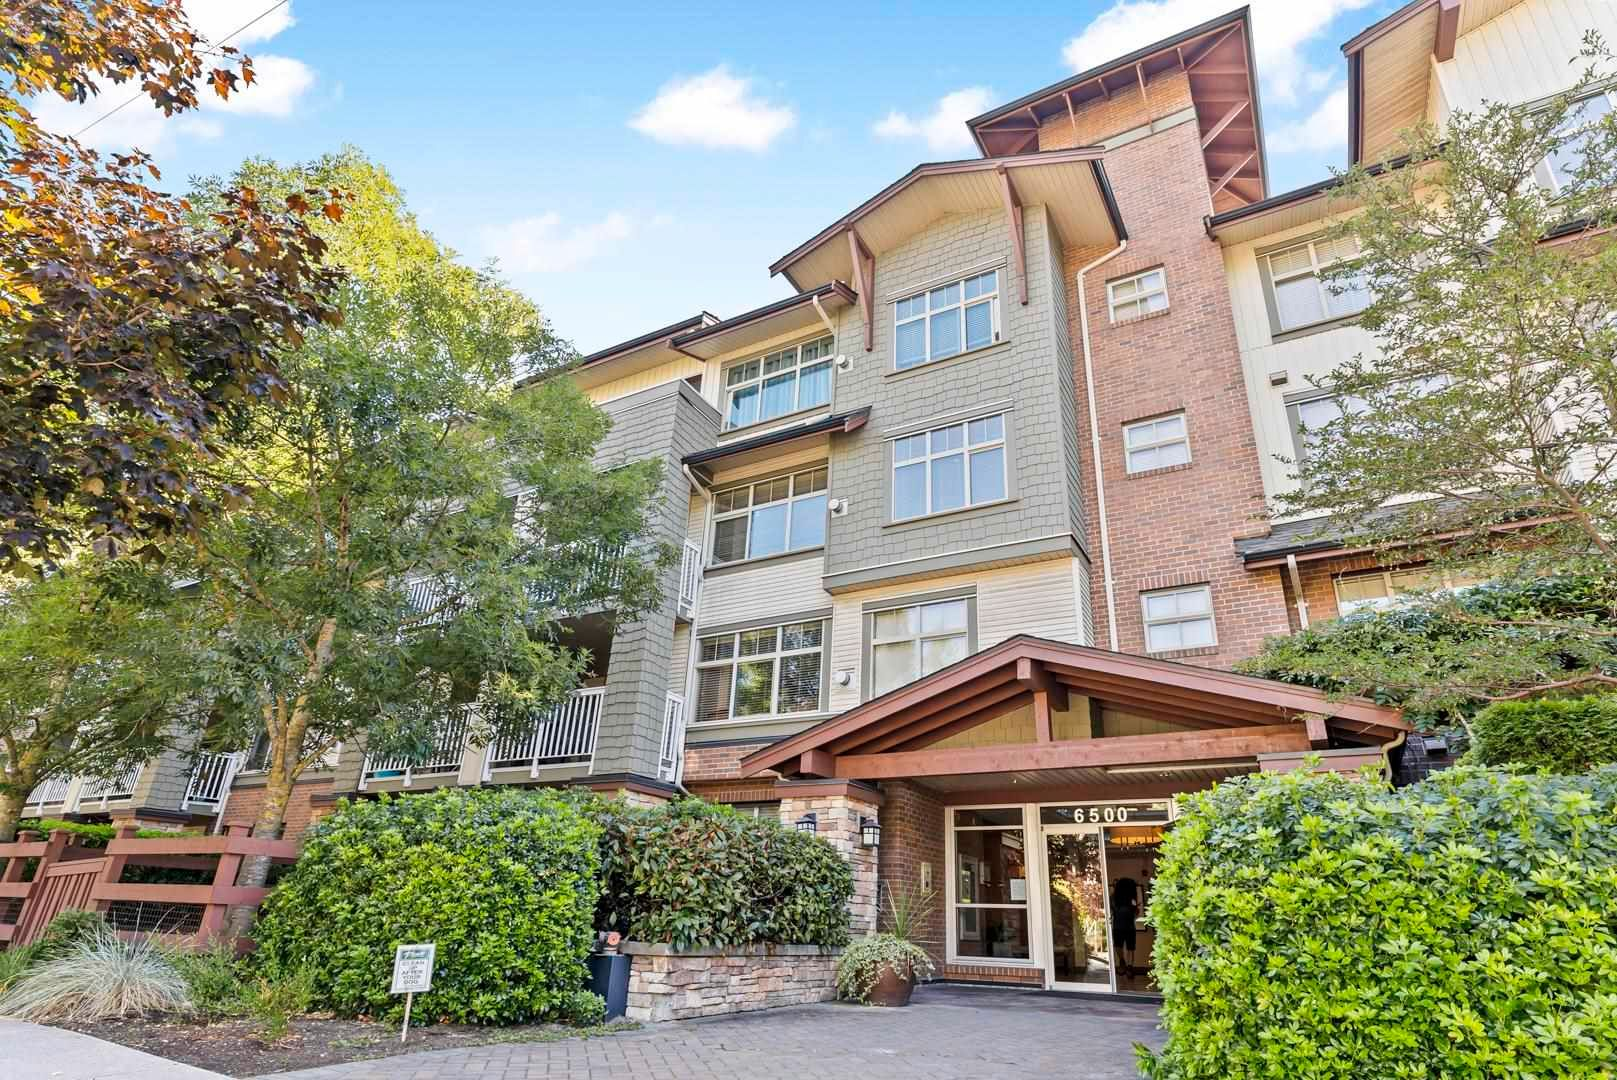 """Main Photo: 107 6500 194 Street in Surrey: Clayton Condo for sale in """"SUNSET GROVE"""" (Cloverdale)  : MLS®# R2605423"""